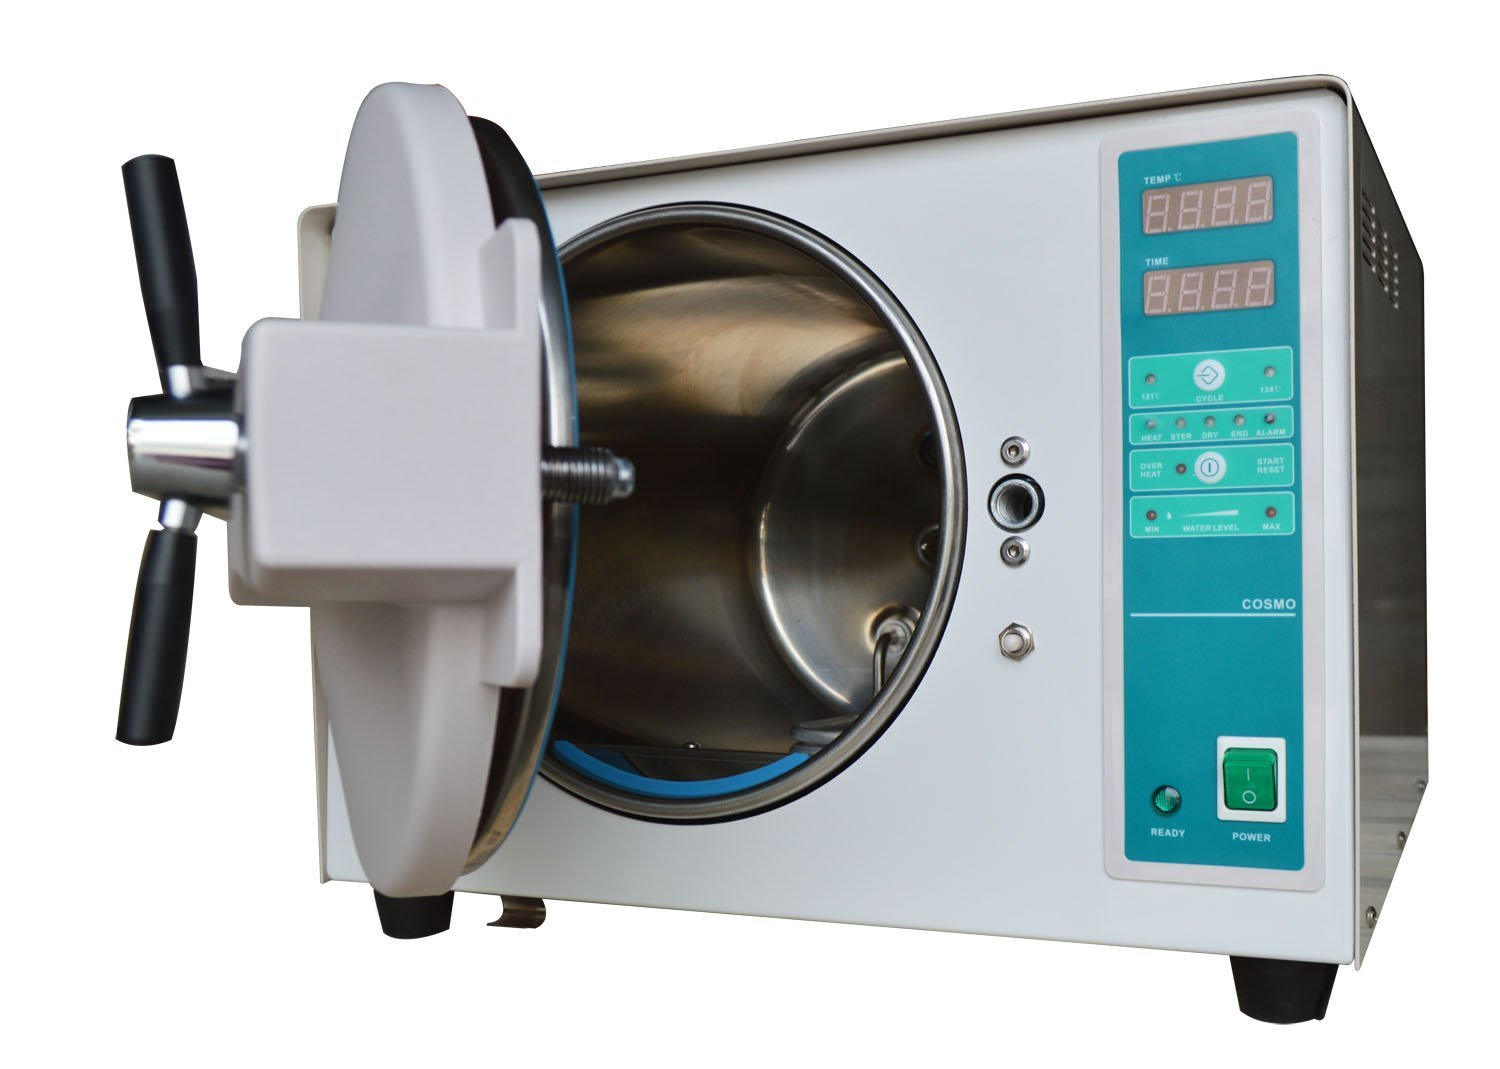 18L Dental Stainless Steel Pressure Steam Automatic Autoclave Lab Equipment BN-16 by BONEW (Image #5)